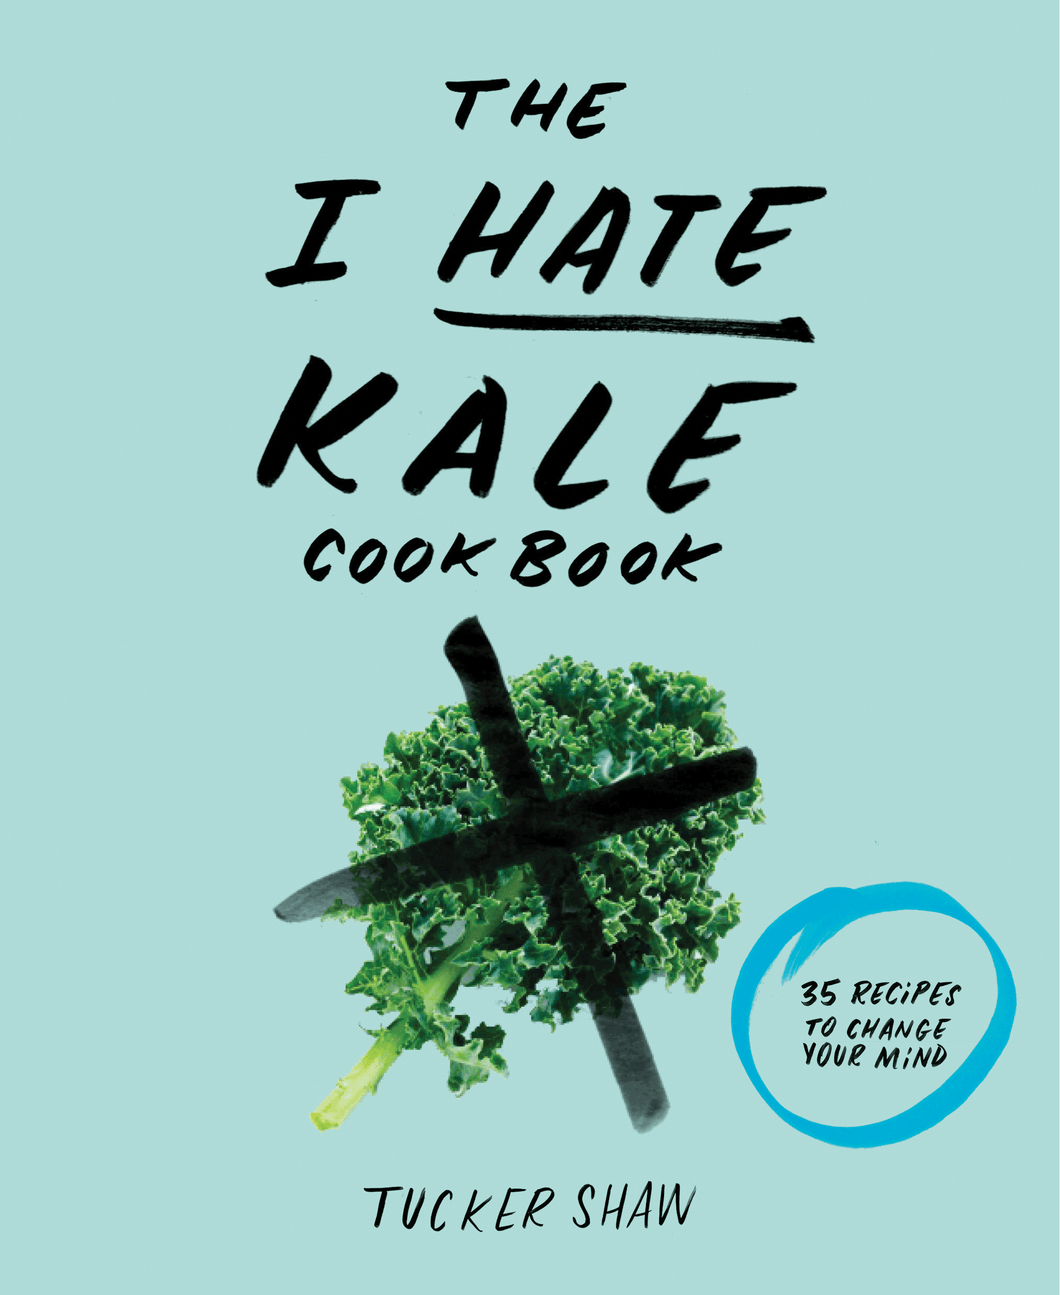 Kale. Designed to convert the staunchest of critics, the recipes are easy to follow and unintimidating for novice—and skeptical—cooks. The books include 35 easy recipes that take into account what the haters dislike—texture, smell, taste—to help them open up their minds and change a hate into a love.